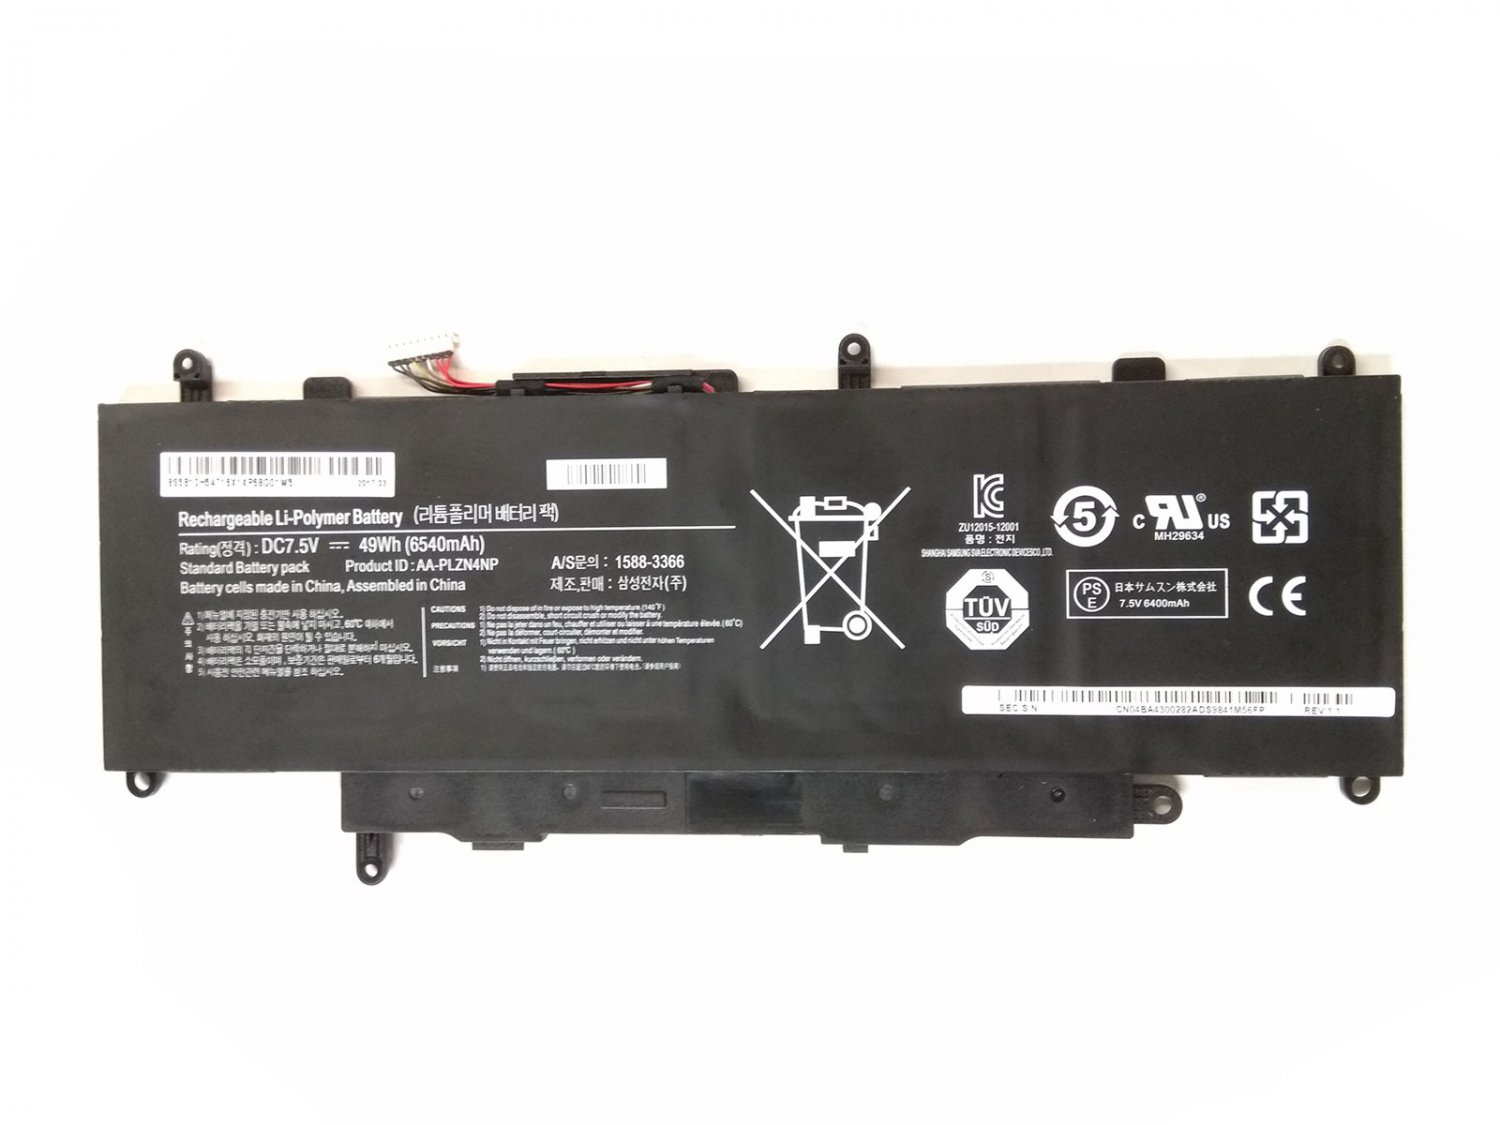 AA-PLZN4NP Battery For Samsung ATIV XE700T1C-A01BE XE700T1C-A01CA